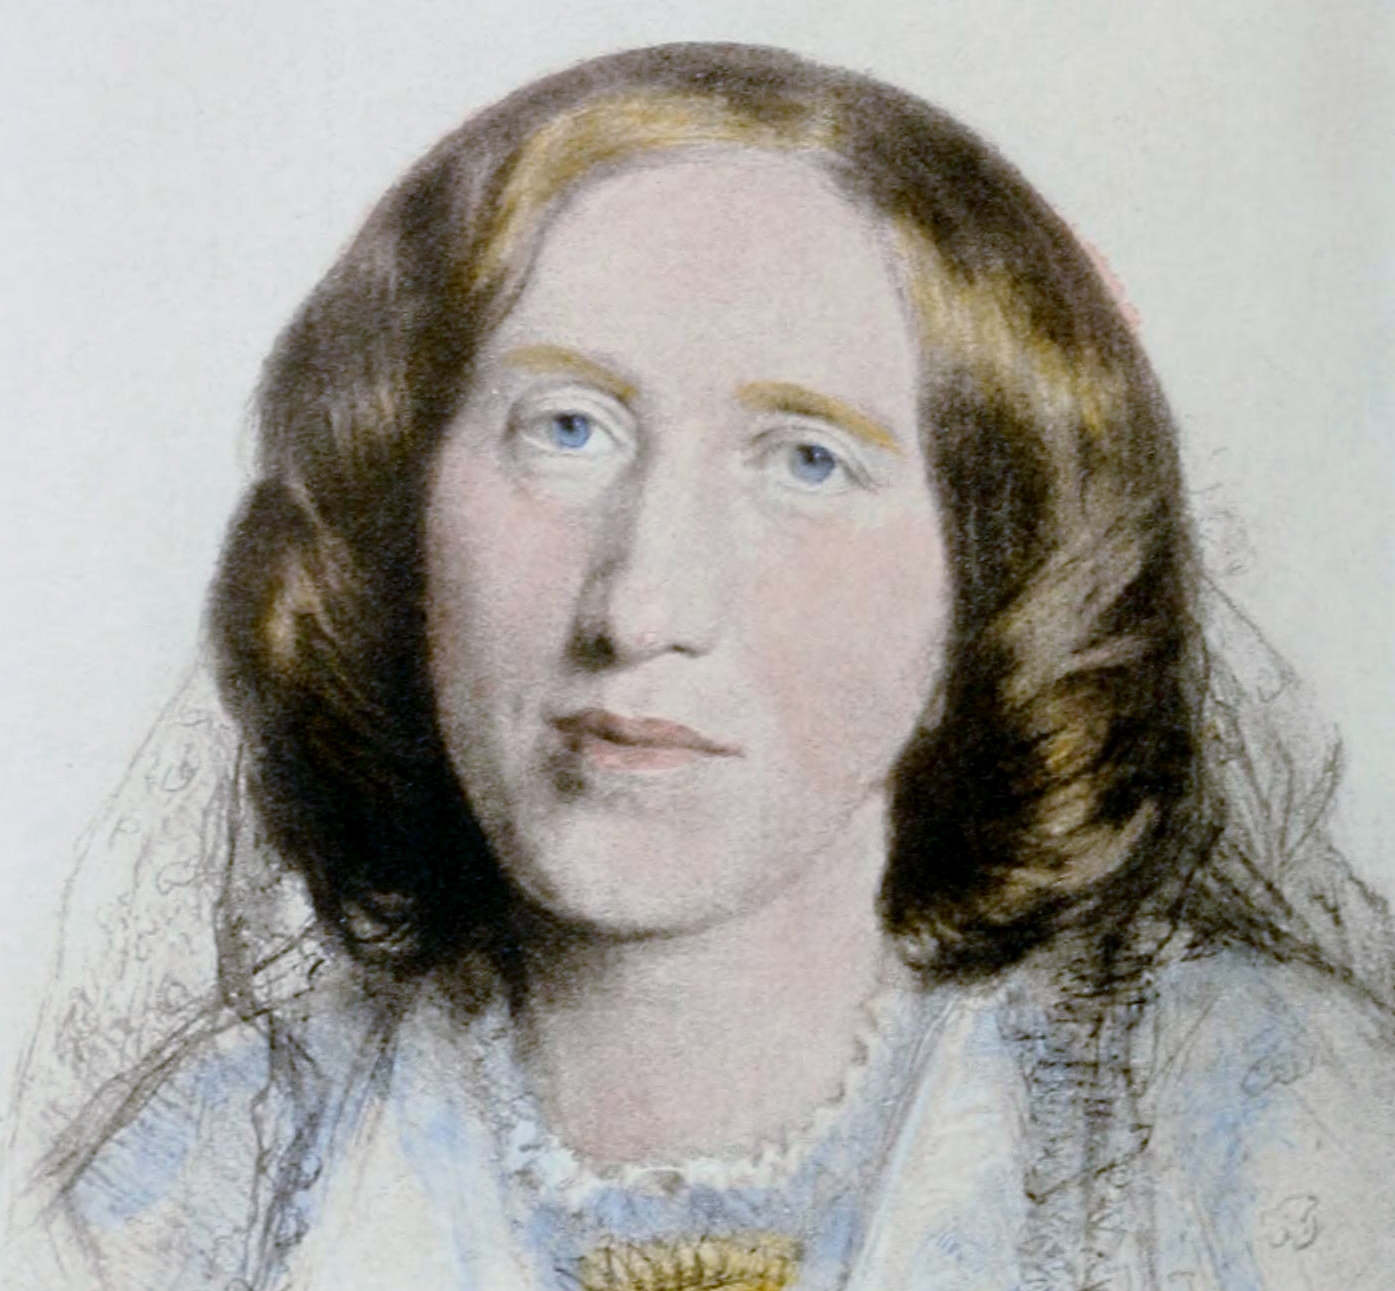 painting of a white woman's portrait